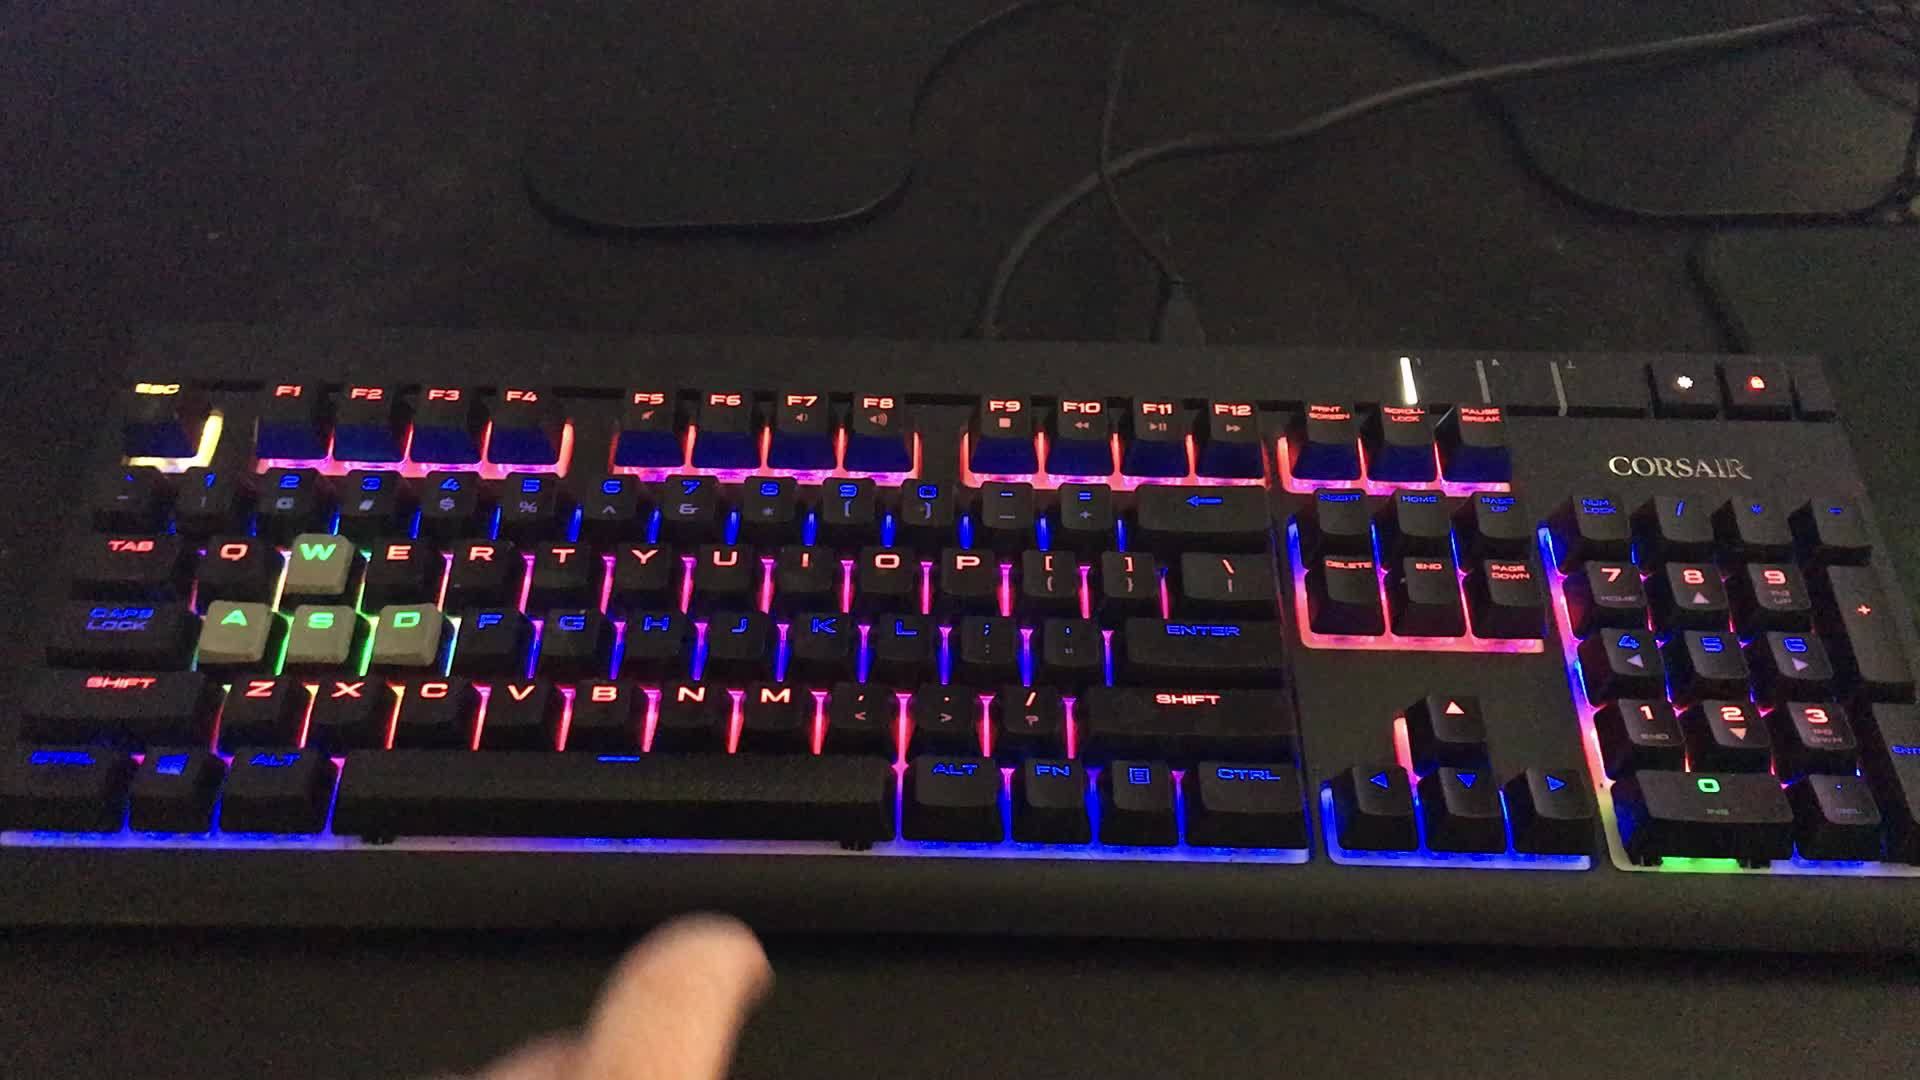 pcmasterrace, Finger Ascension! GIFs